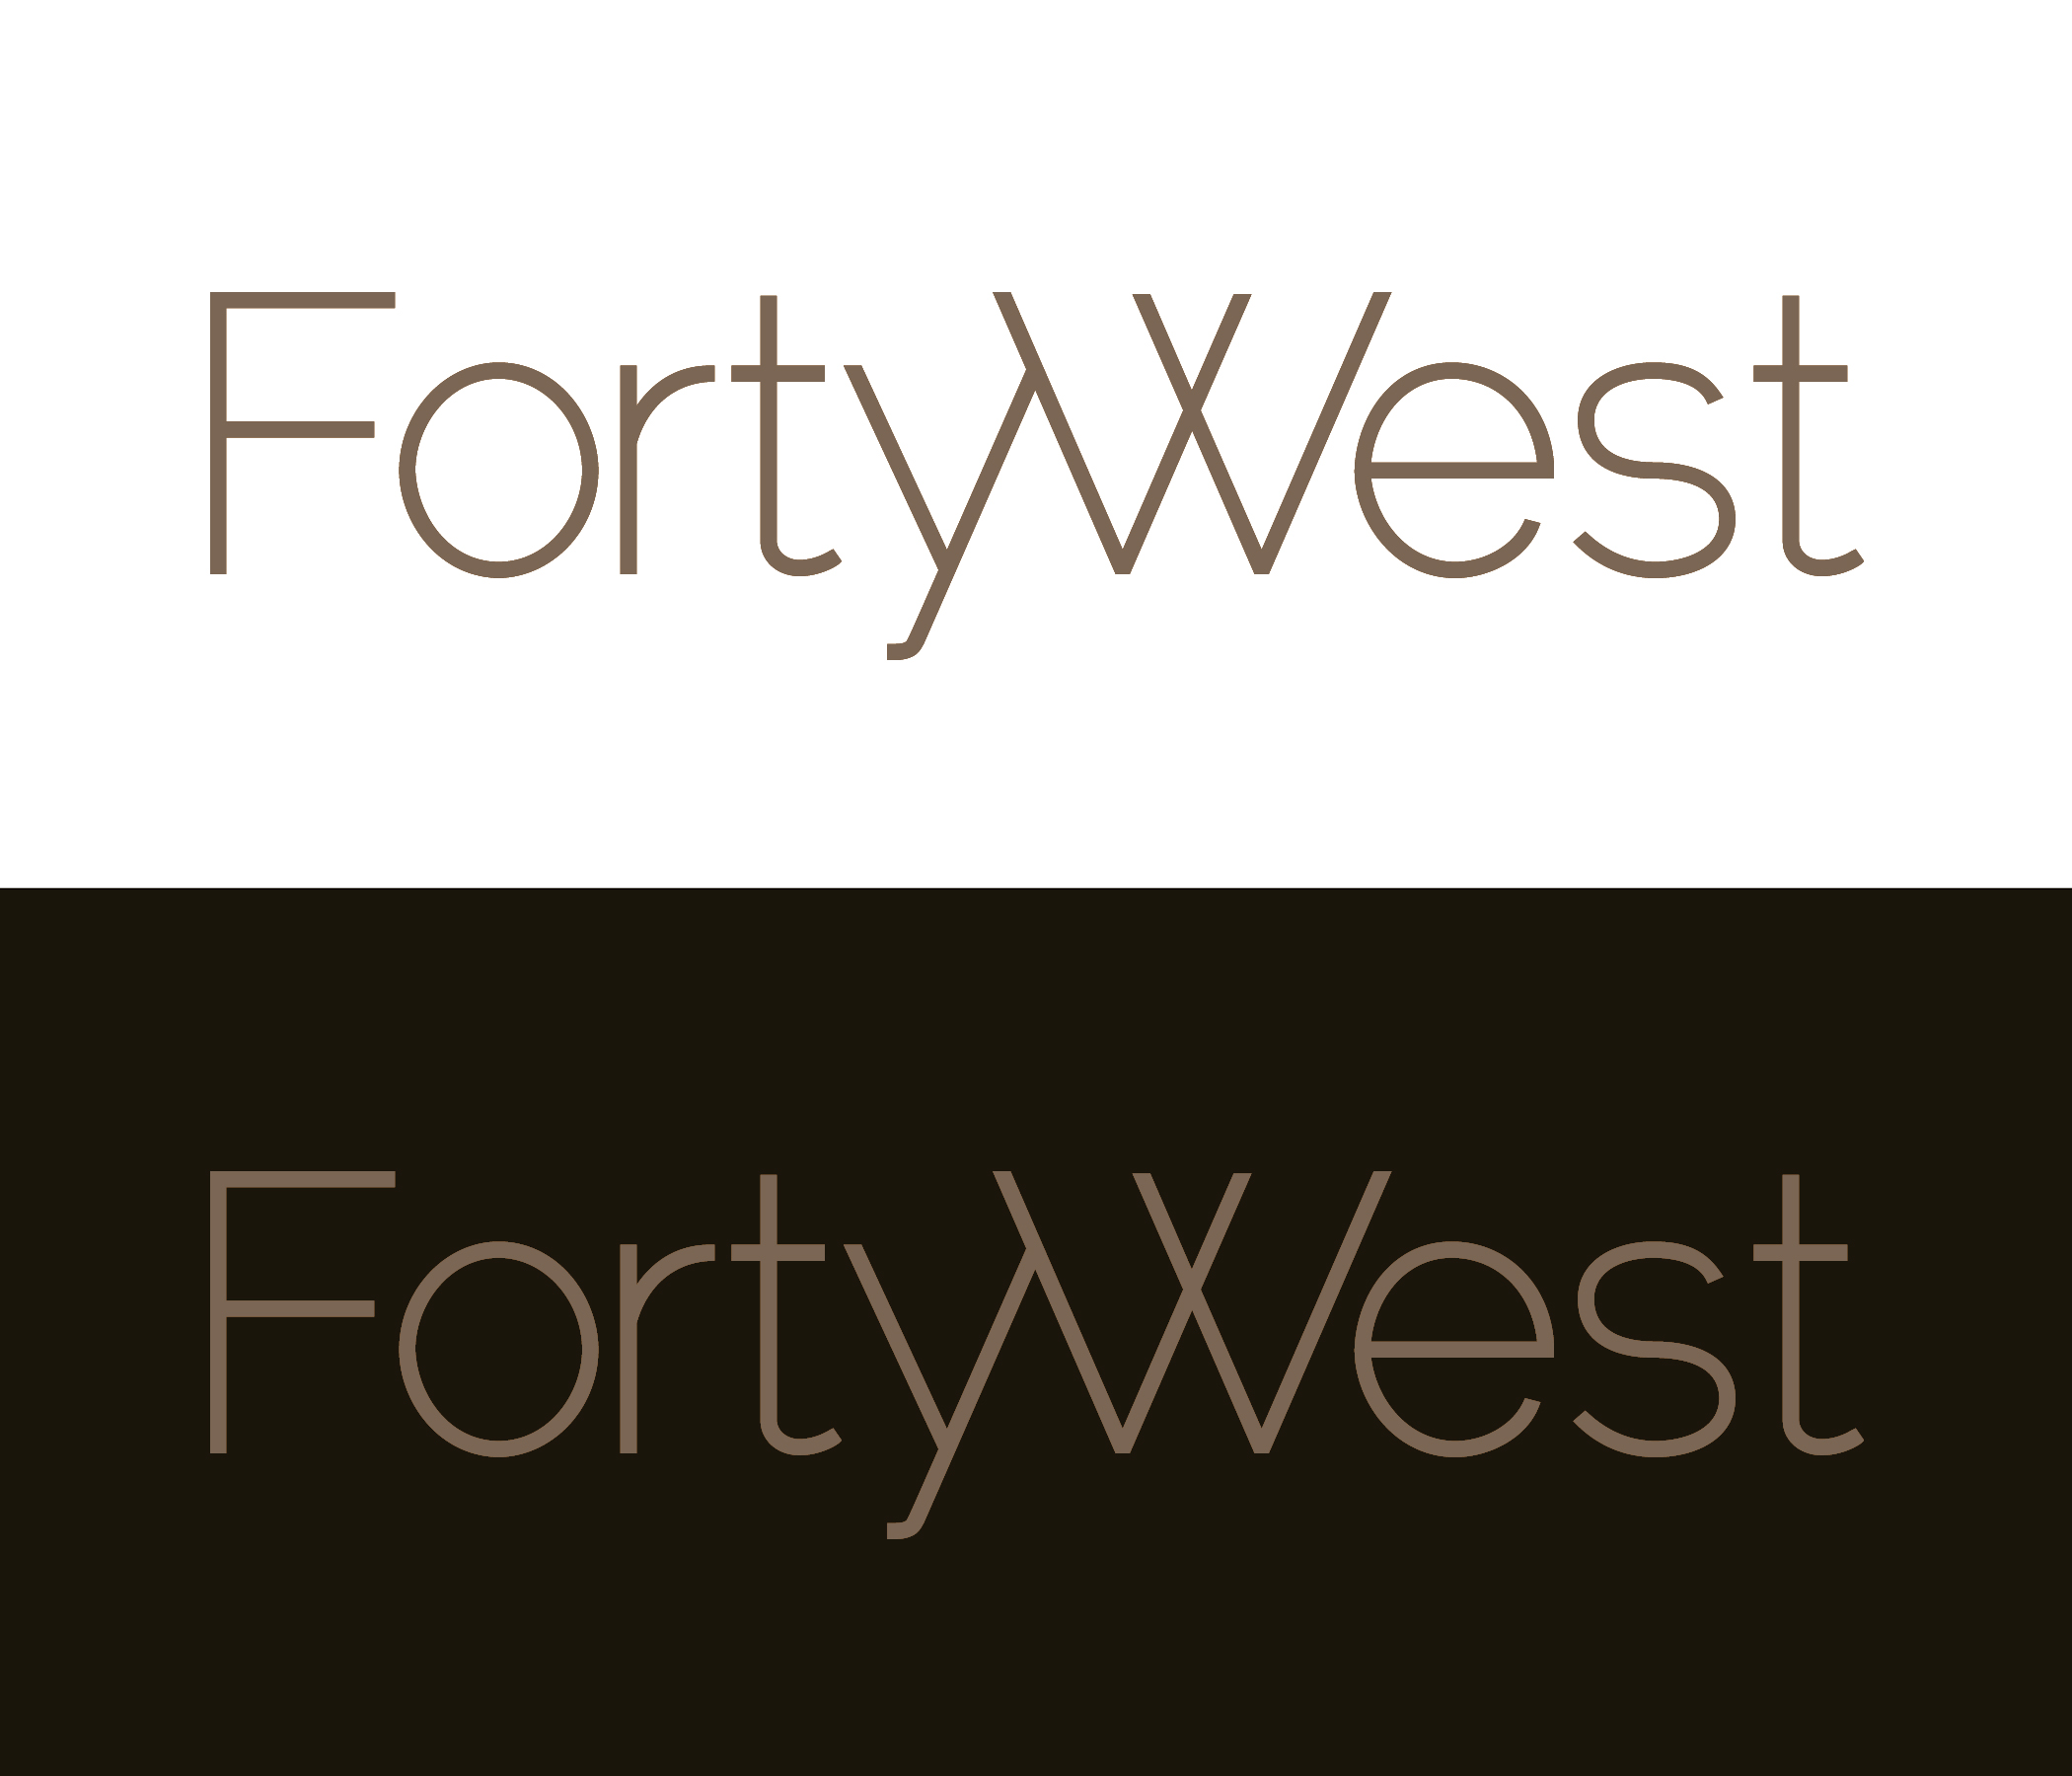 Logo Design by moidgreat - Entry No. 167 in the Logo Design Contest Unique Logo Design Wanted for Forty West.